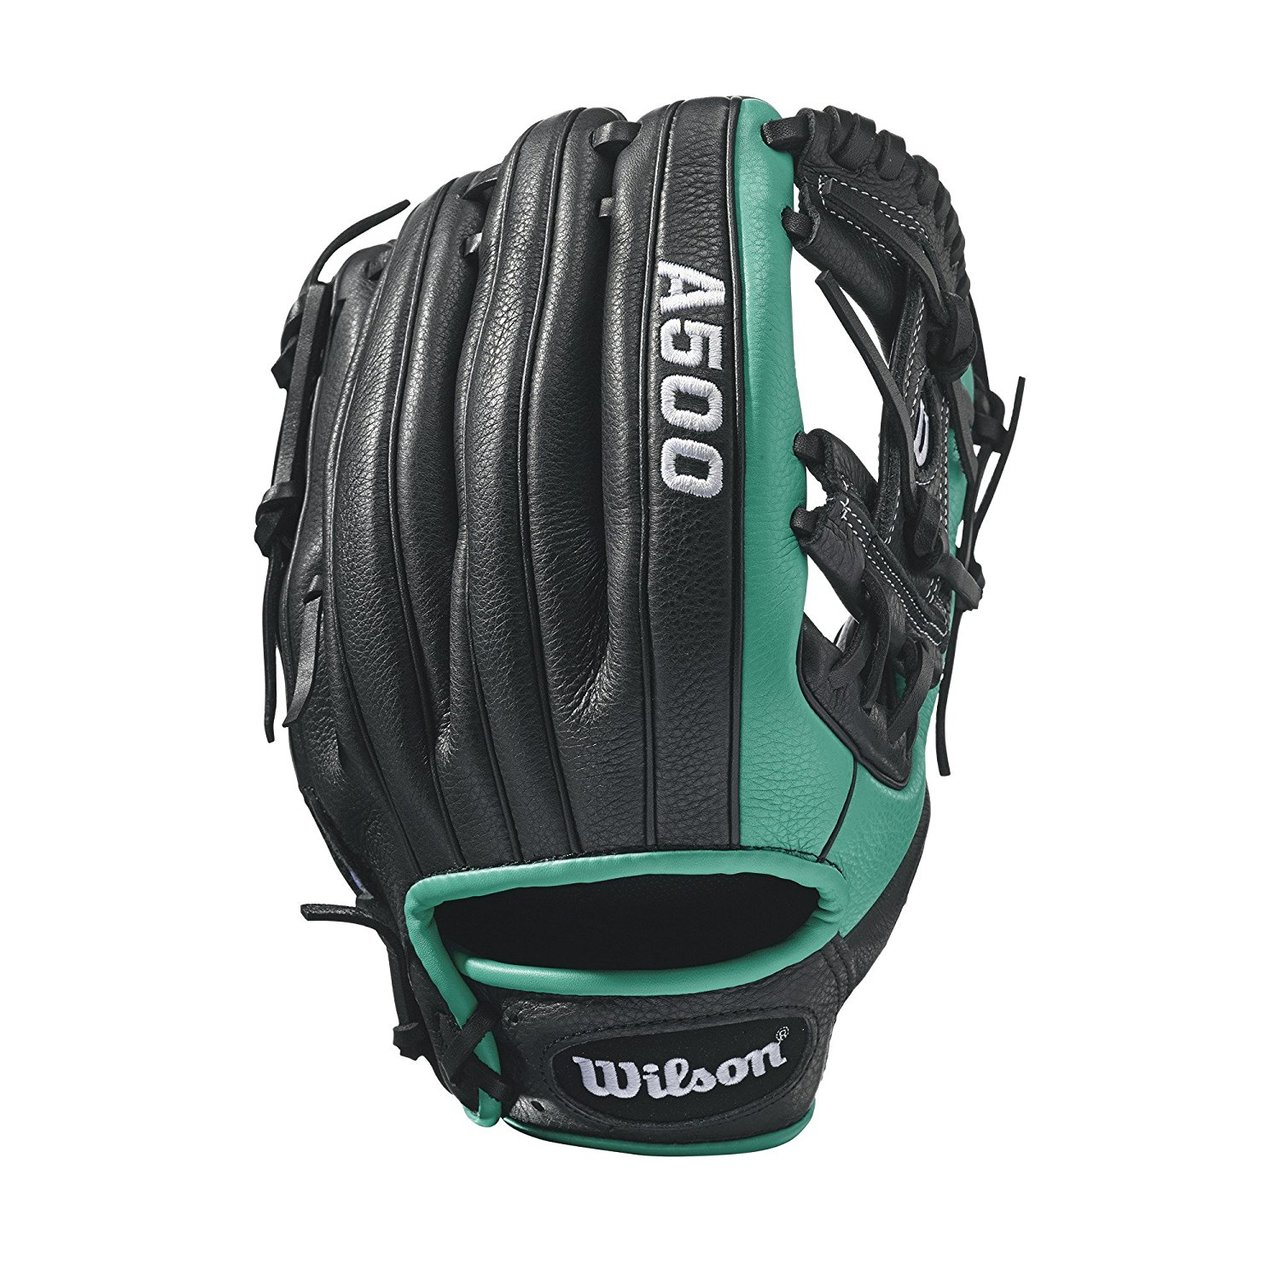 A500 RC22- 11.5 Wilson A500 RC22 Baseball GloveA500 Robinson Cano 11.5 Baseball Glove- Right Hand Throw A500 Robinson Cano 11.5 Baseball Glove- Left Hand Throw WTA05RB17115 WTA05LB17115 Designed for youth players, this A500 11.5 model replicates Robinson Cano's Game Model A2000 RC22 glove in Black and Mariner's Green. It features an H-Web and maintains a shallow pocket perfect for all positions.The A500 is the lightest all-leather glove on the market. The glove's top-grain leather provides a flexible, ready-to-play feel that performs without the extra weight of other leather gloves. 11.5 H-Web Replica of Robinson Cano's Game Model glove, the A2000 RC22 GMGame-ready top grain leather shell provides all the feel without the wieght2x Palm Construction to reinforce the pocketDual WeltingTM for a durable pocketThe lighest all-leather glove on the market UtilityBoth10.75 h-web Game Ready Top Grain LeatherA500 1786 Showtime 11.5 Pedroia Fit Bandit 1786A1074 Wilson Players Video